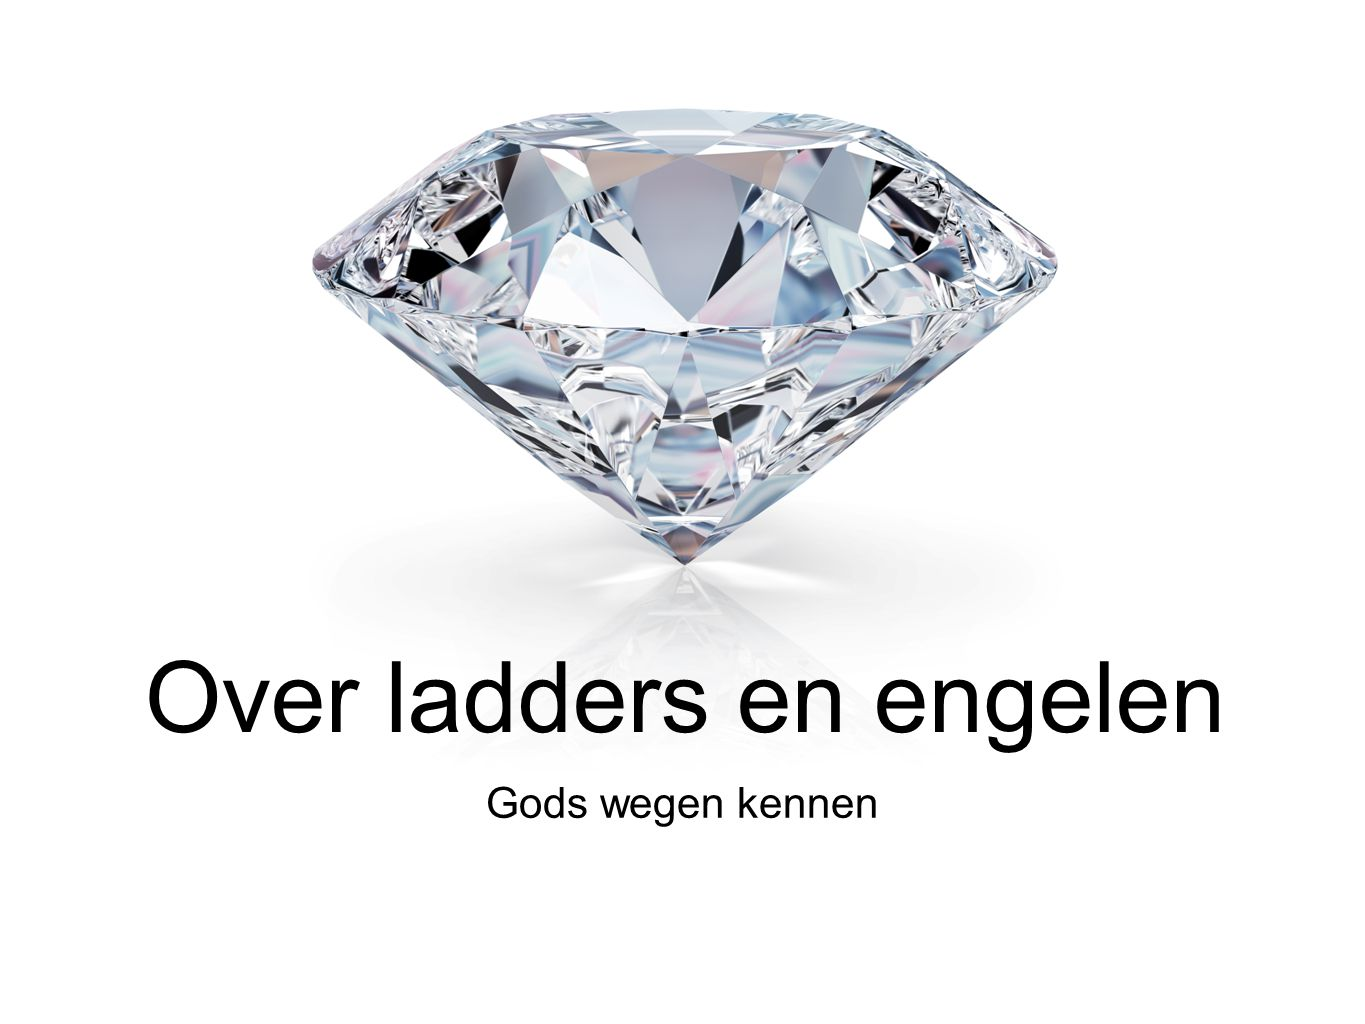 Over ladders en engelen